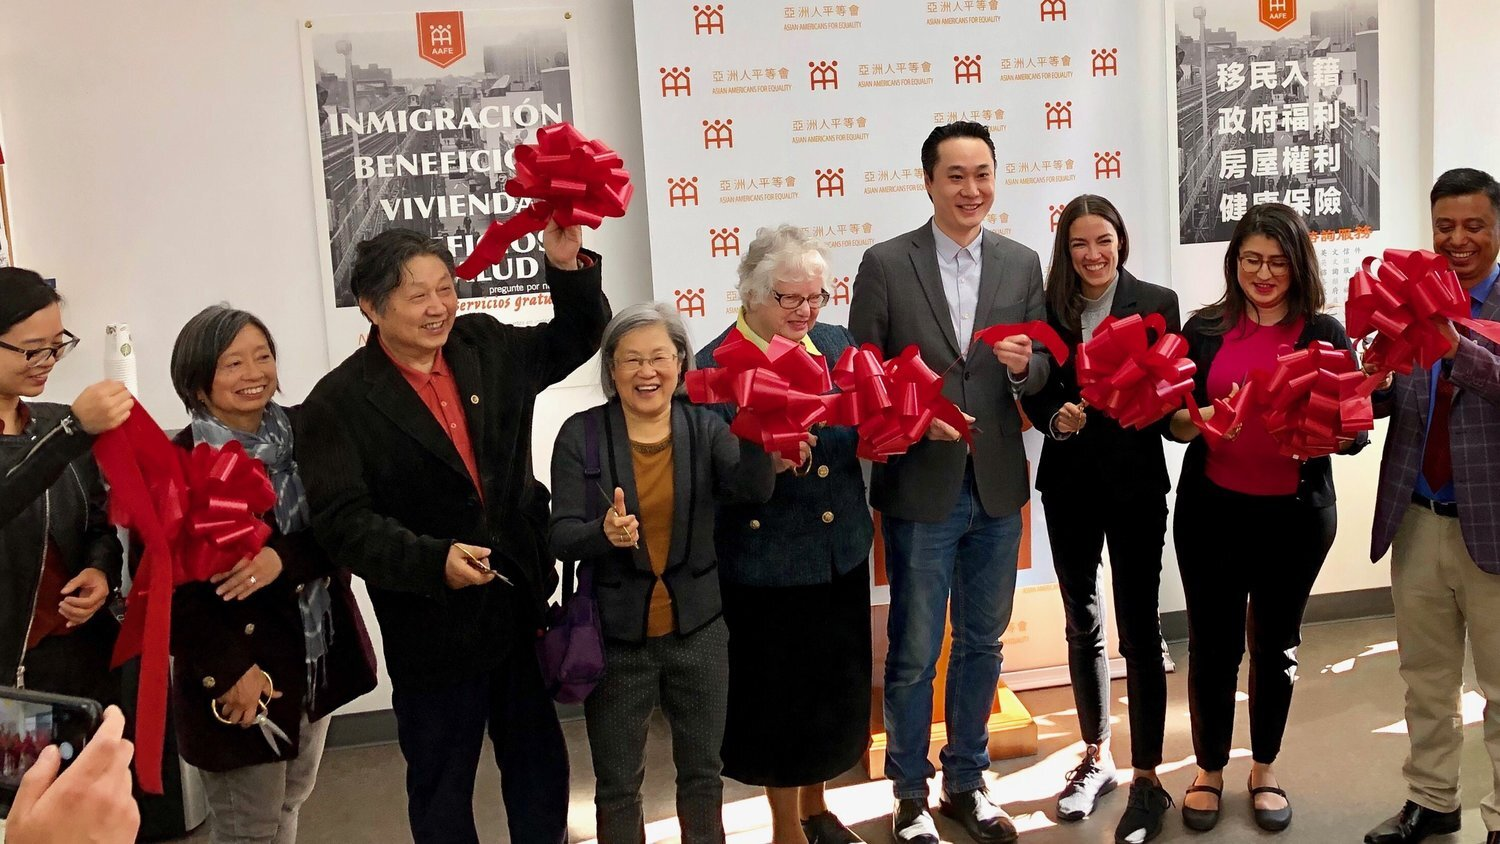 From left to right, Jackie Huey, AAFE board member; Fang Shu Tui, AAFE client and local resident; Lydia Tom, AAFE board president; State Sen. Toby Ann Stavisky; Thomas Yu, AAFE co-executive director; U.S. Rep. Alexandria Ocasio-Cortez; State Sen. Jessica Ramos; Prabir Barua, AAFE client and local resident; and Eusebio Veras, AAFE client and local resident. Photo courtesy of AAFE.